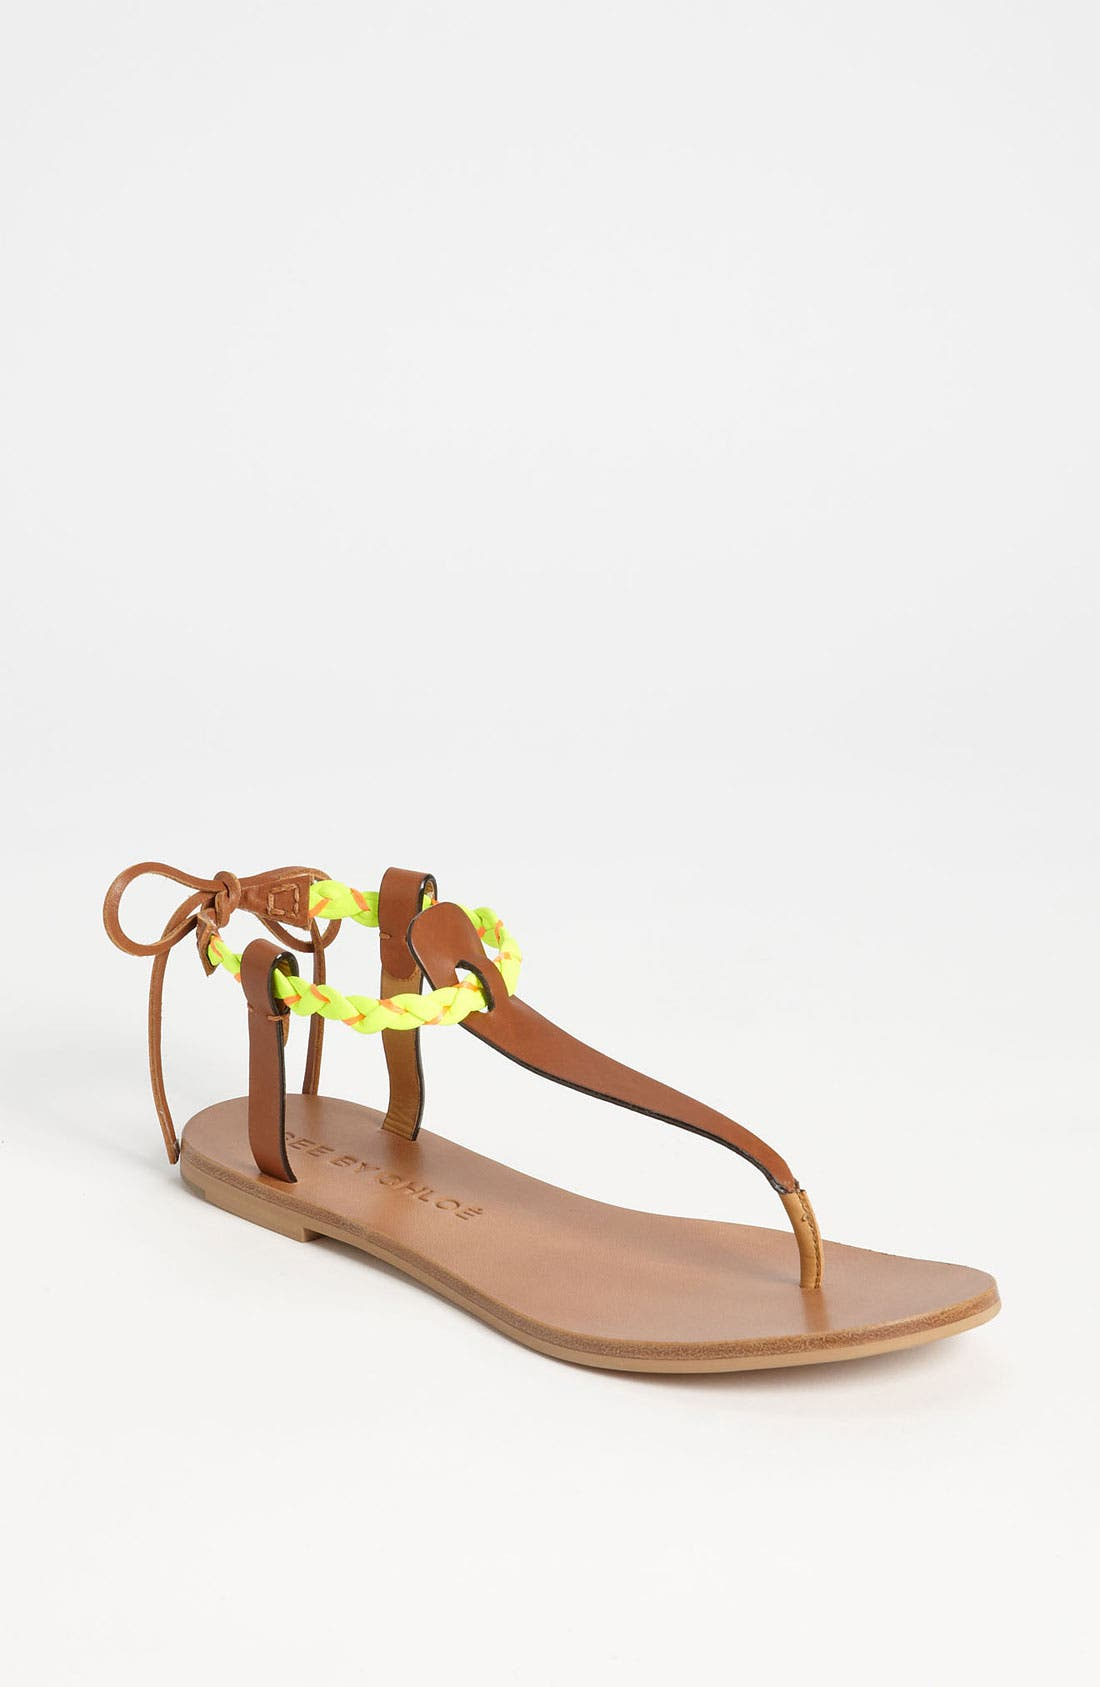 Main Image - See by Chloé 'Summer' Thong Sandal